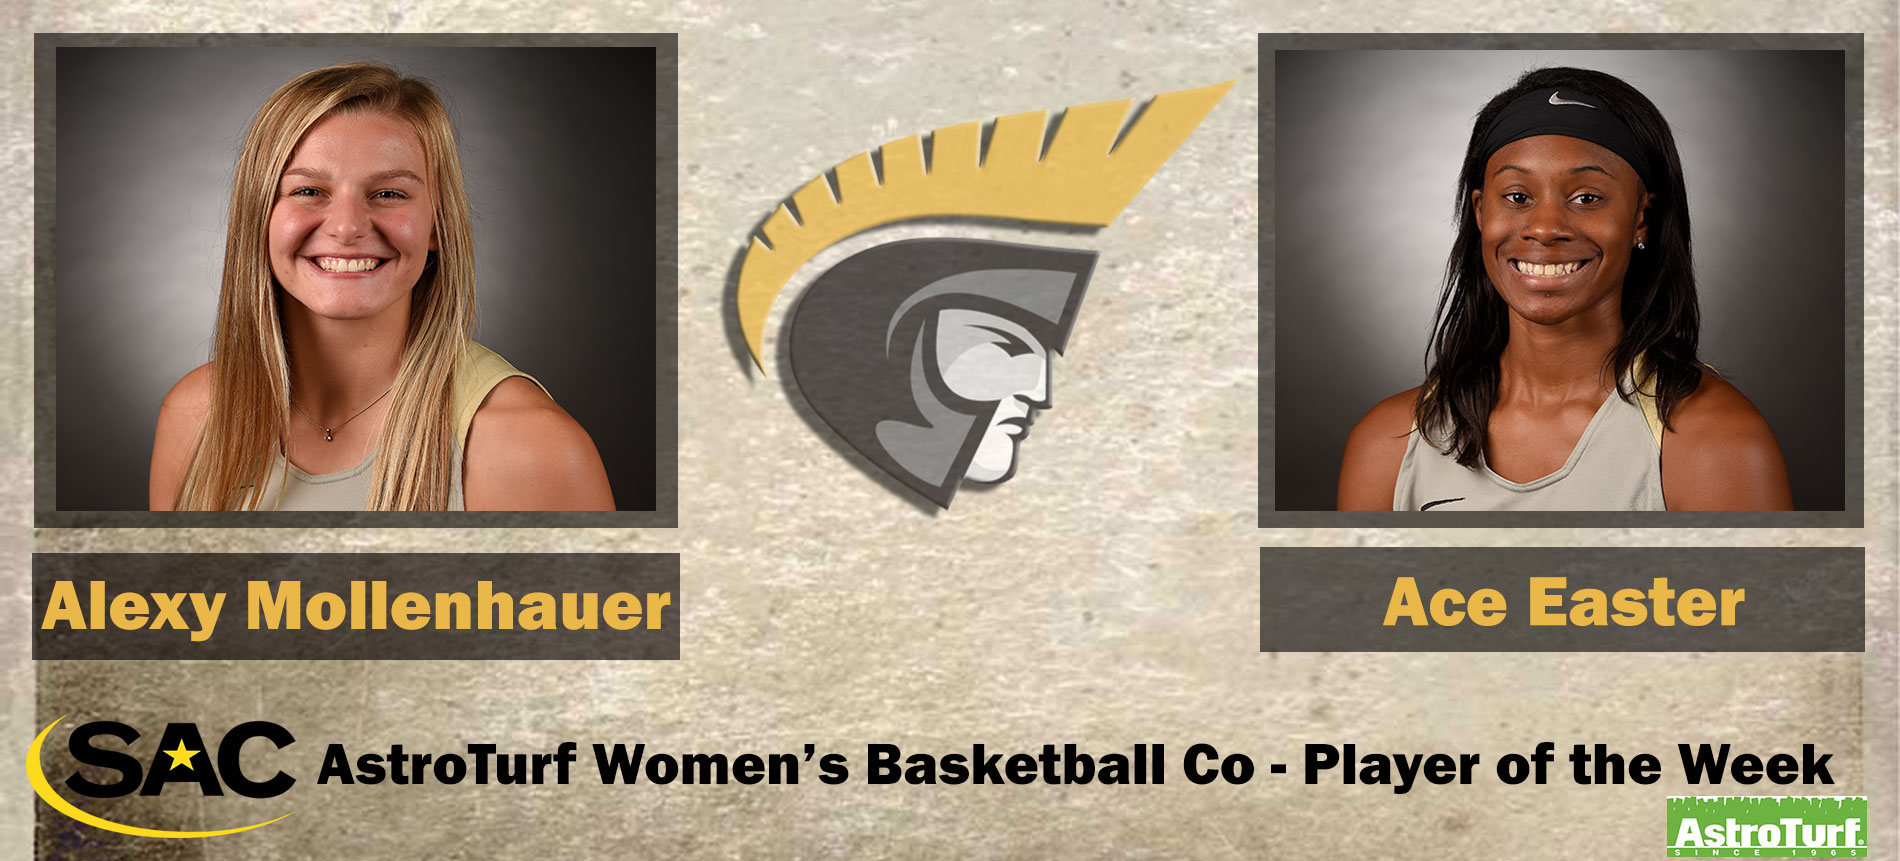 Mollenhauer and Easter Earn South Atlantic Conference AstroTurf Women's Basketball Co-Player of the Week